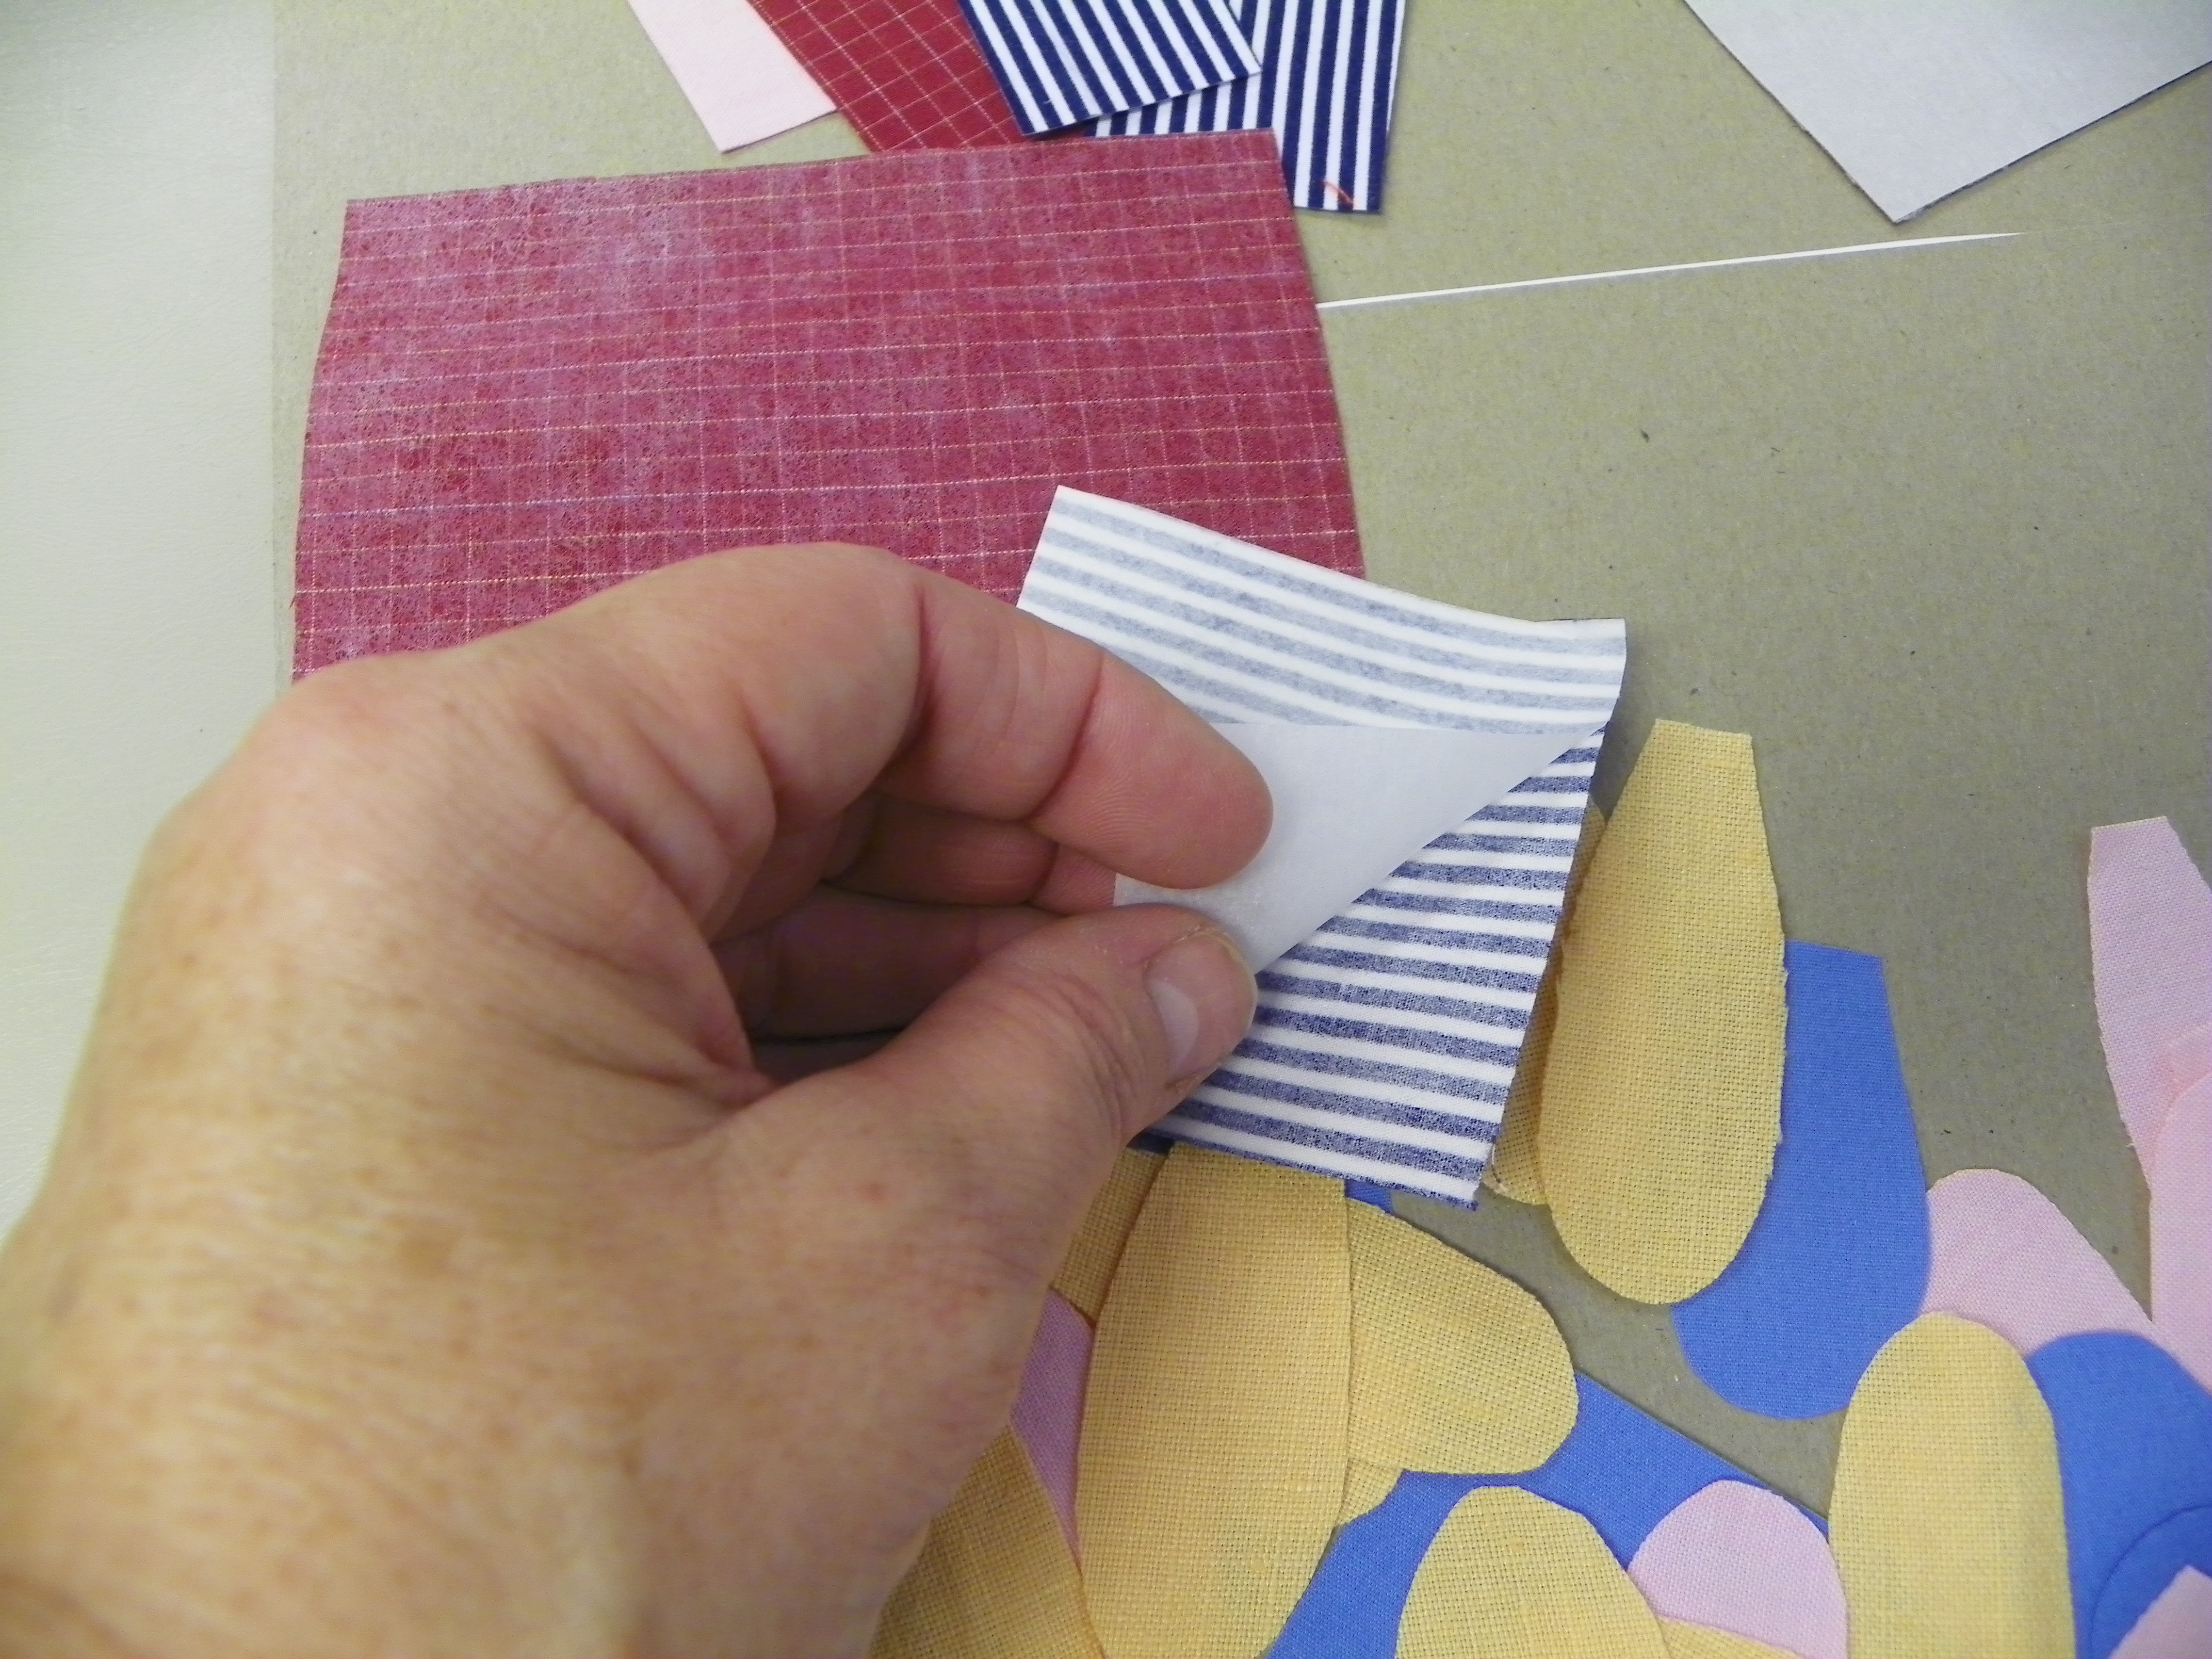 Picture of Peeling the Paper Off the Back of the Shapes